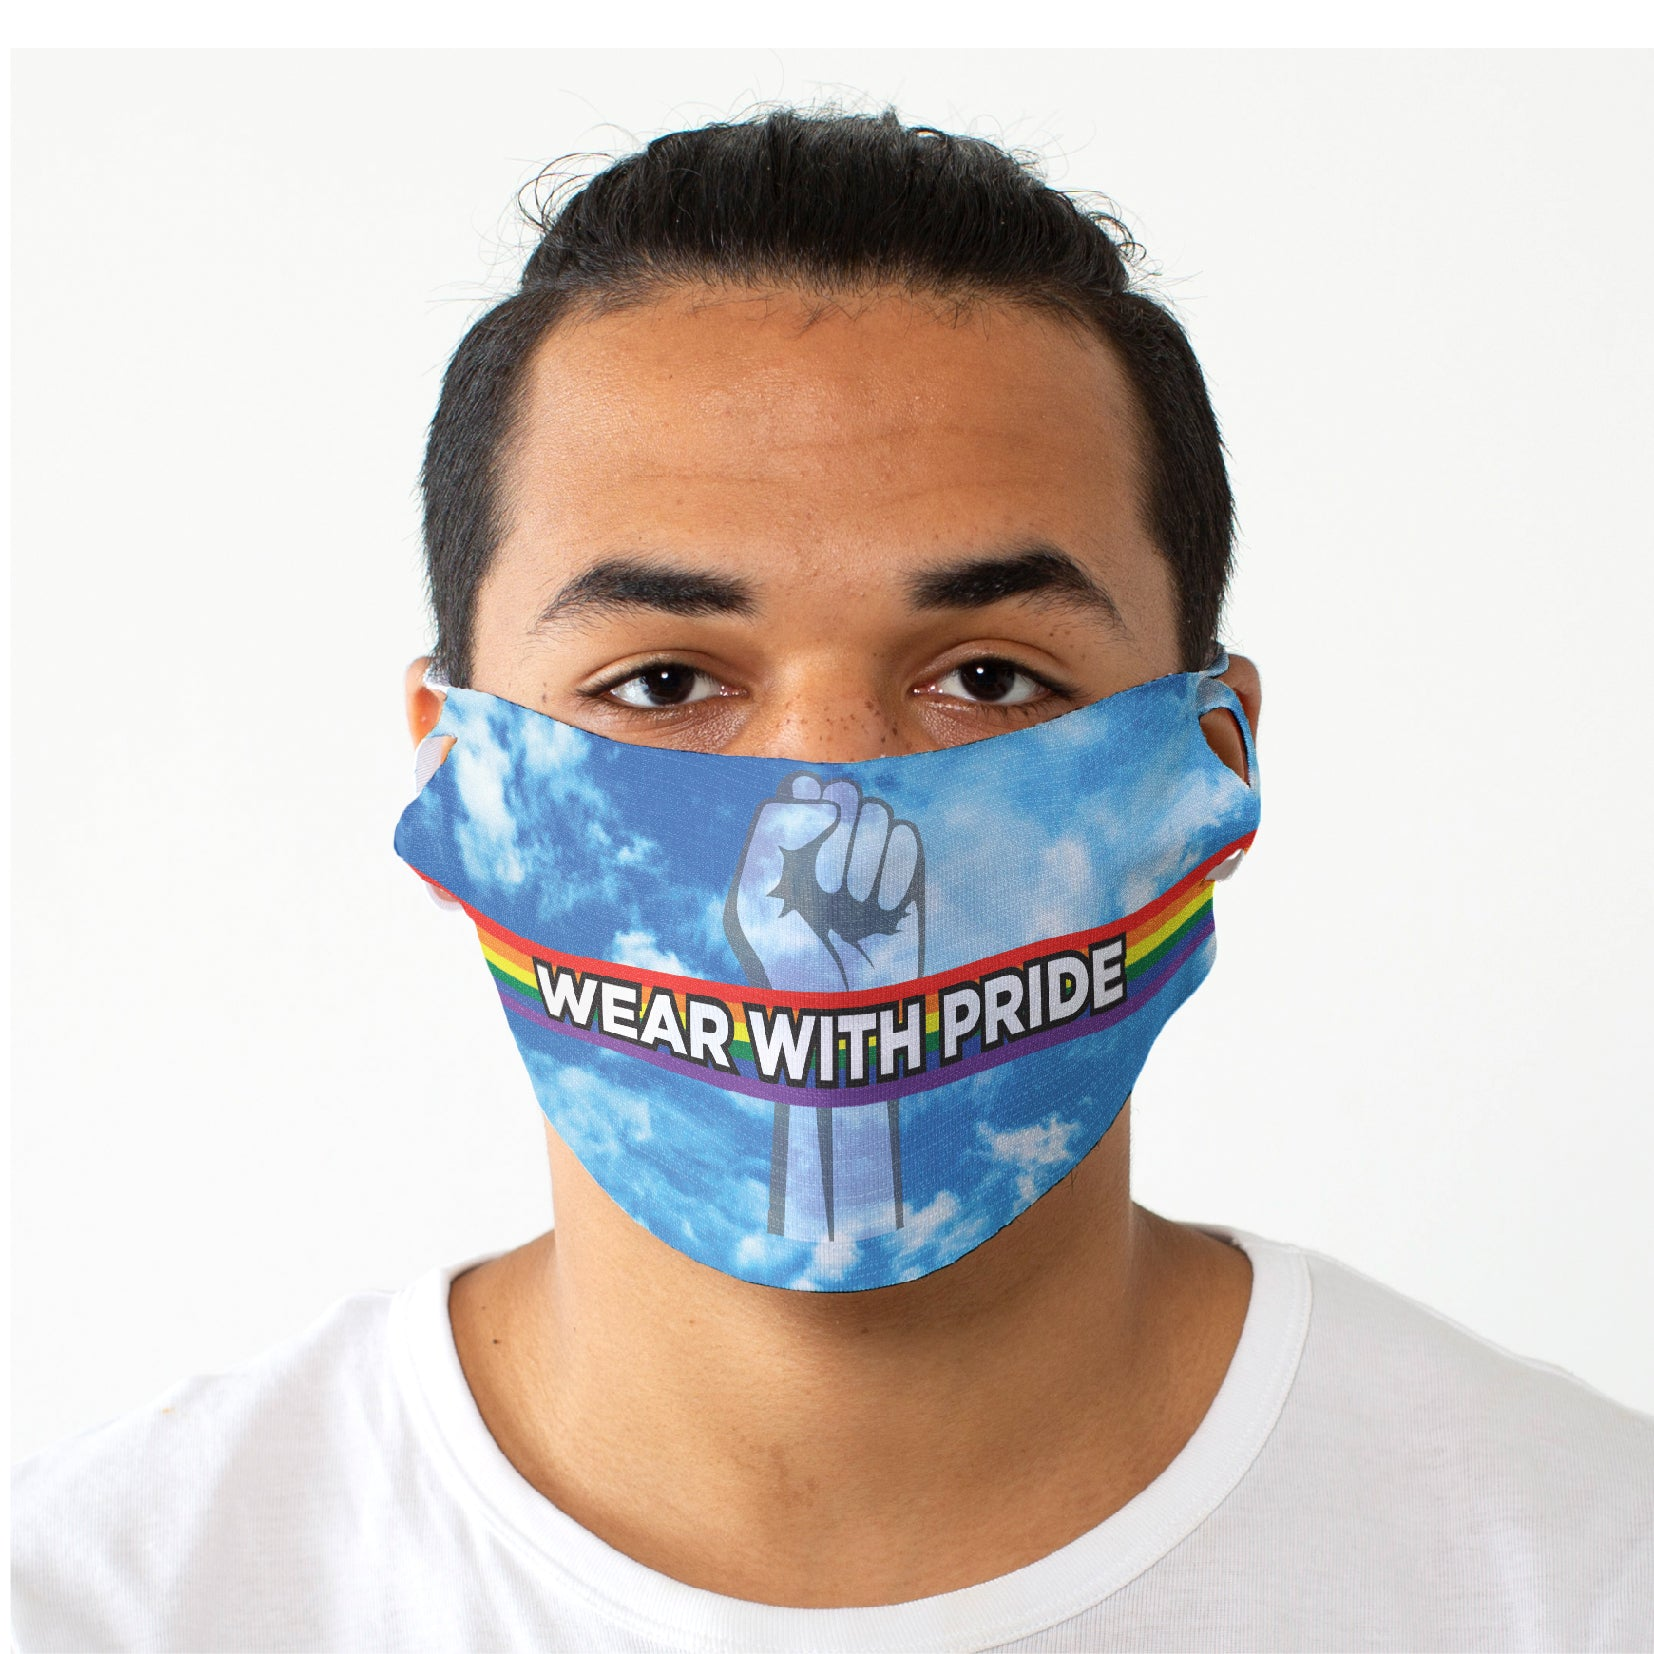 Wear With Pride - Single Ply